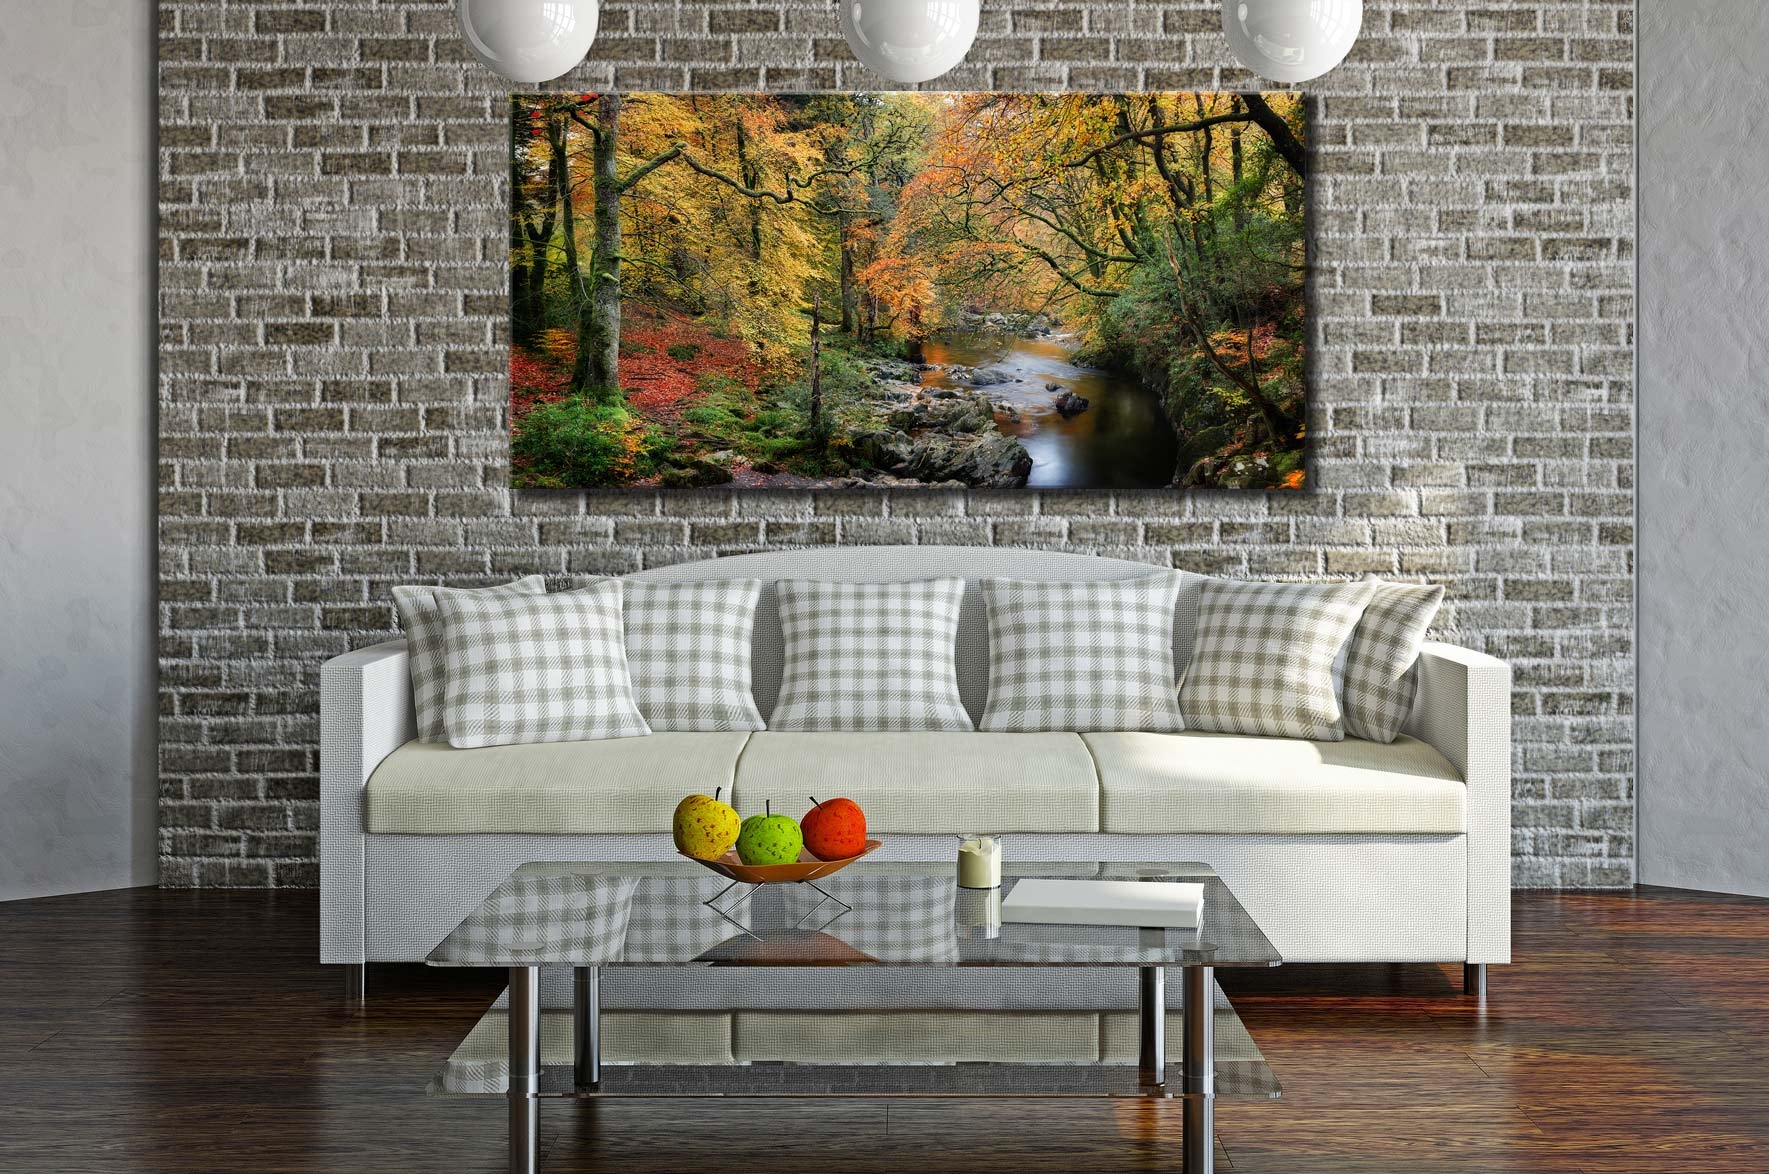 Autumn Woodlands of Eskdale - Canvas Print on Wall